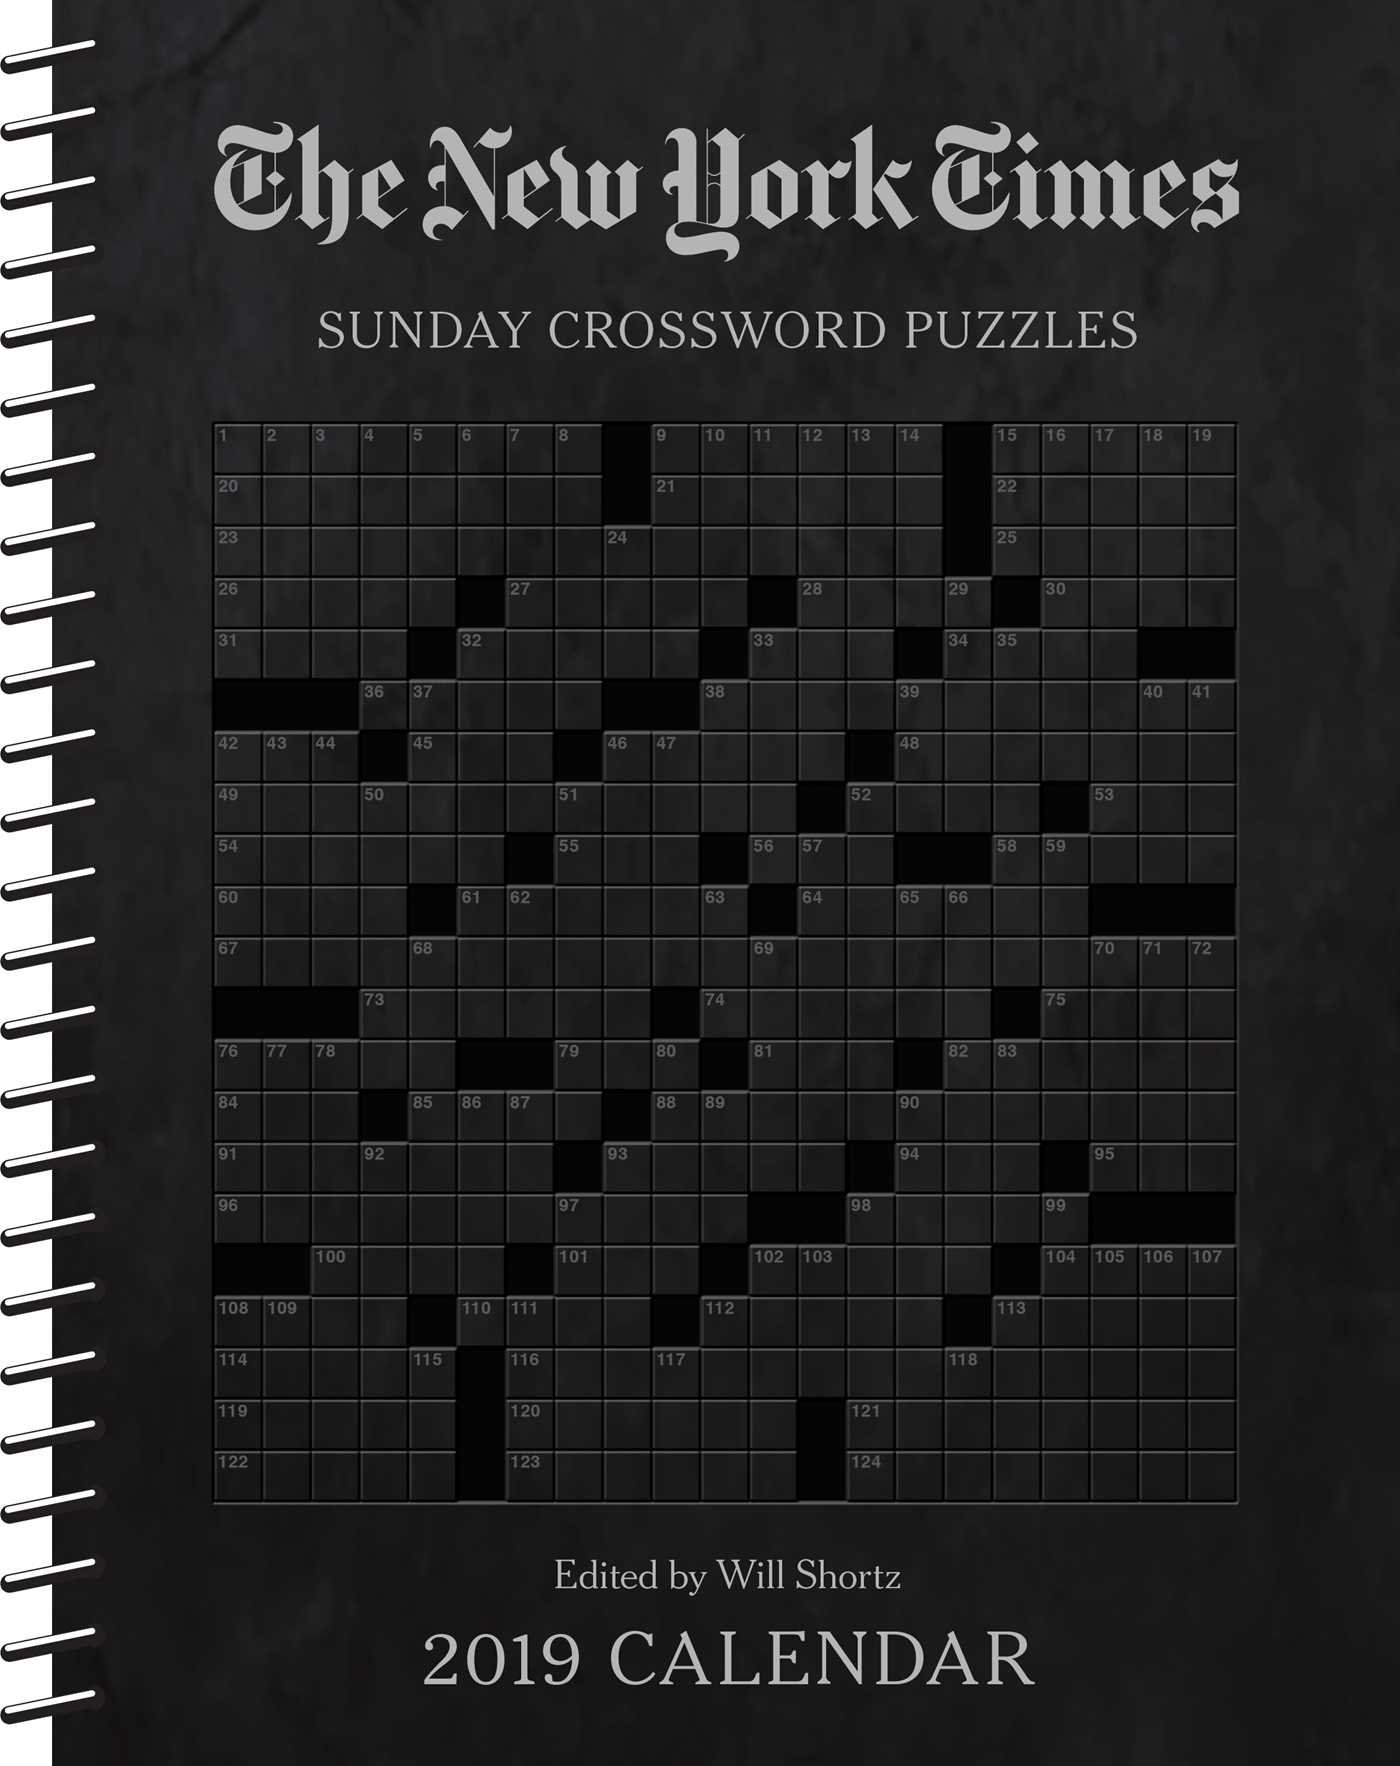 The New York Times Sunday Crossword Puzzles 2019 Weekly Planner Calendar Calendar – Engagement Calendar, September 4, 2018 Andrews McMeel Publishing 1449493912 Calendars NON-CLASSIFIABLE